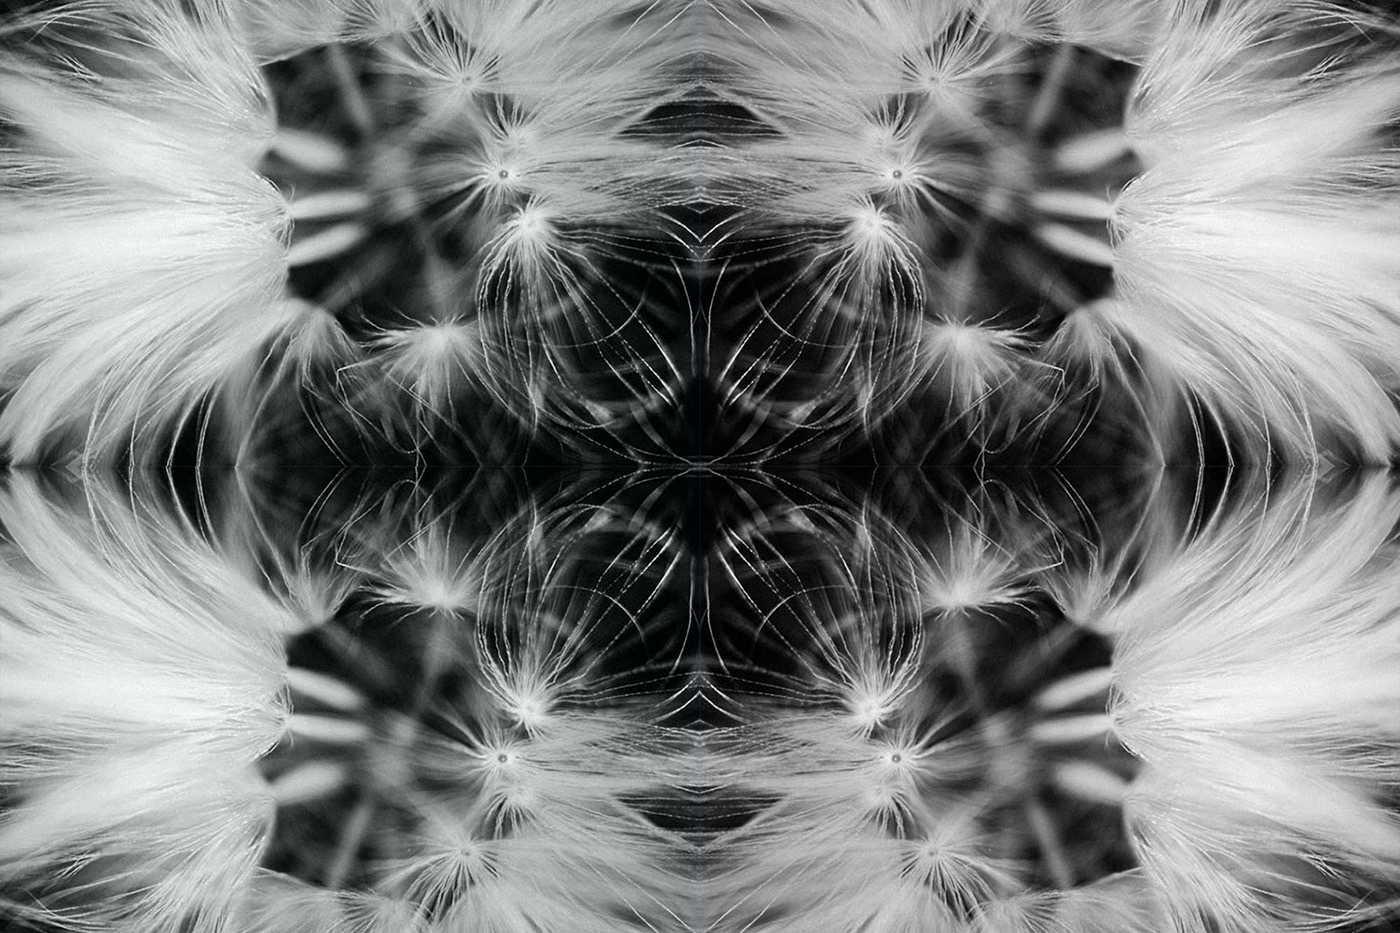 Kaleidoscope art experimentation using dandelion seeds. Black and white photography.